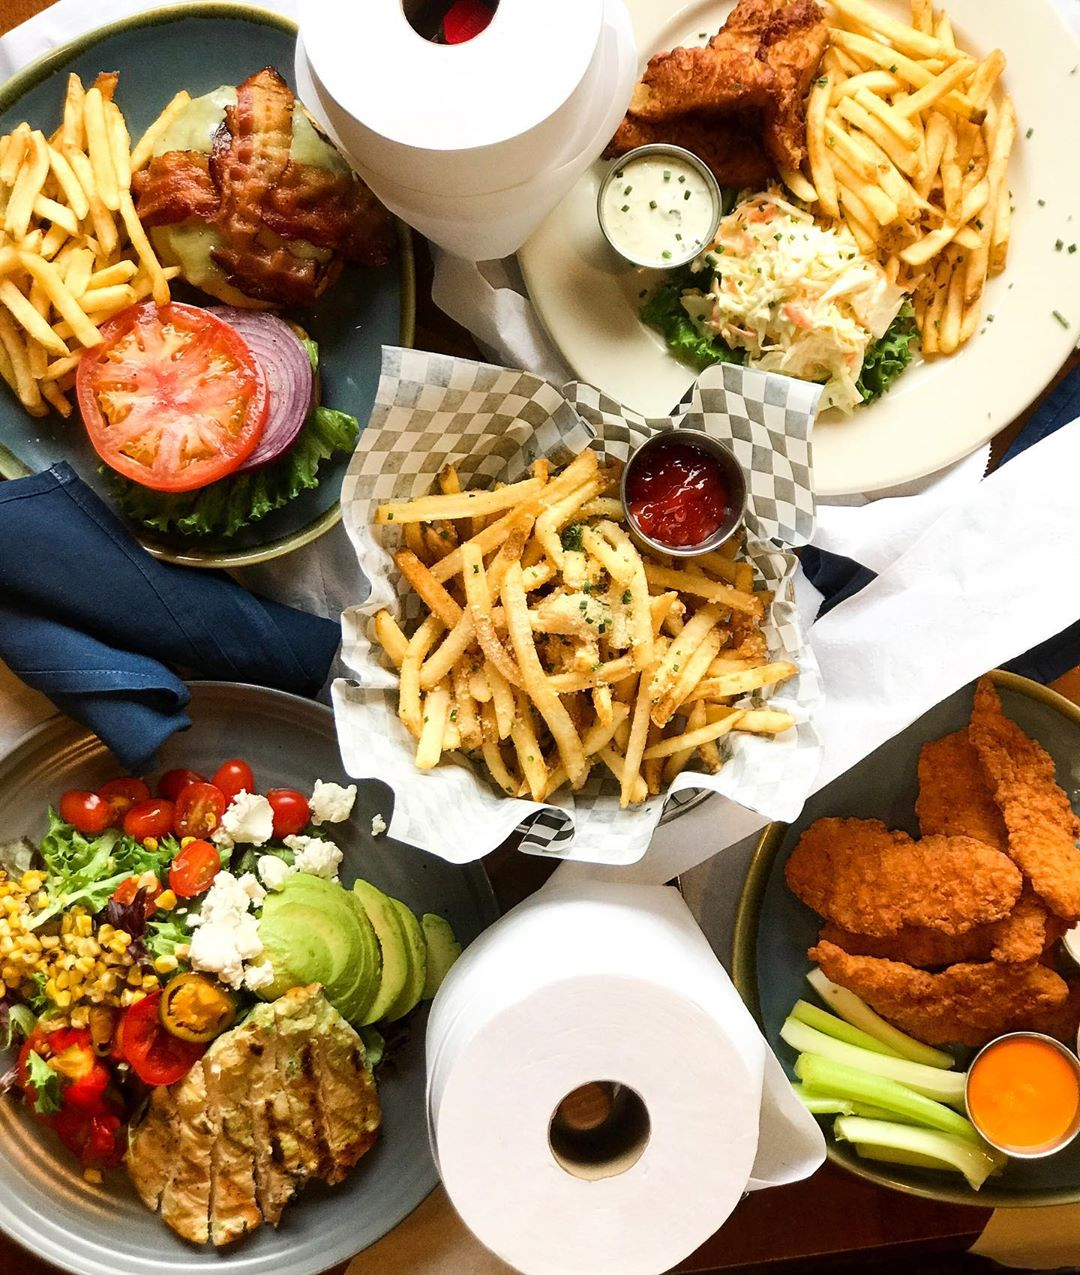 Overhead view of a table full of plates of pub fare and rolls of toilet paper